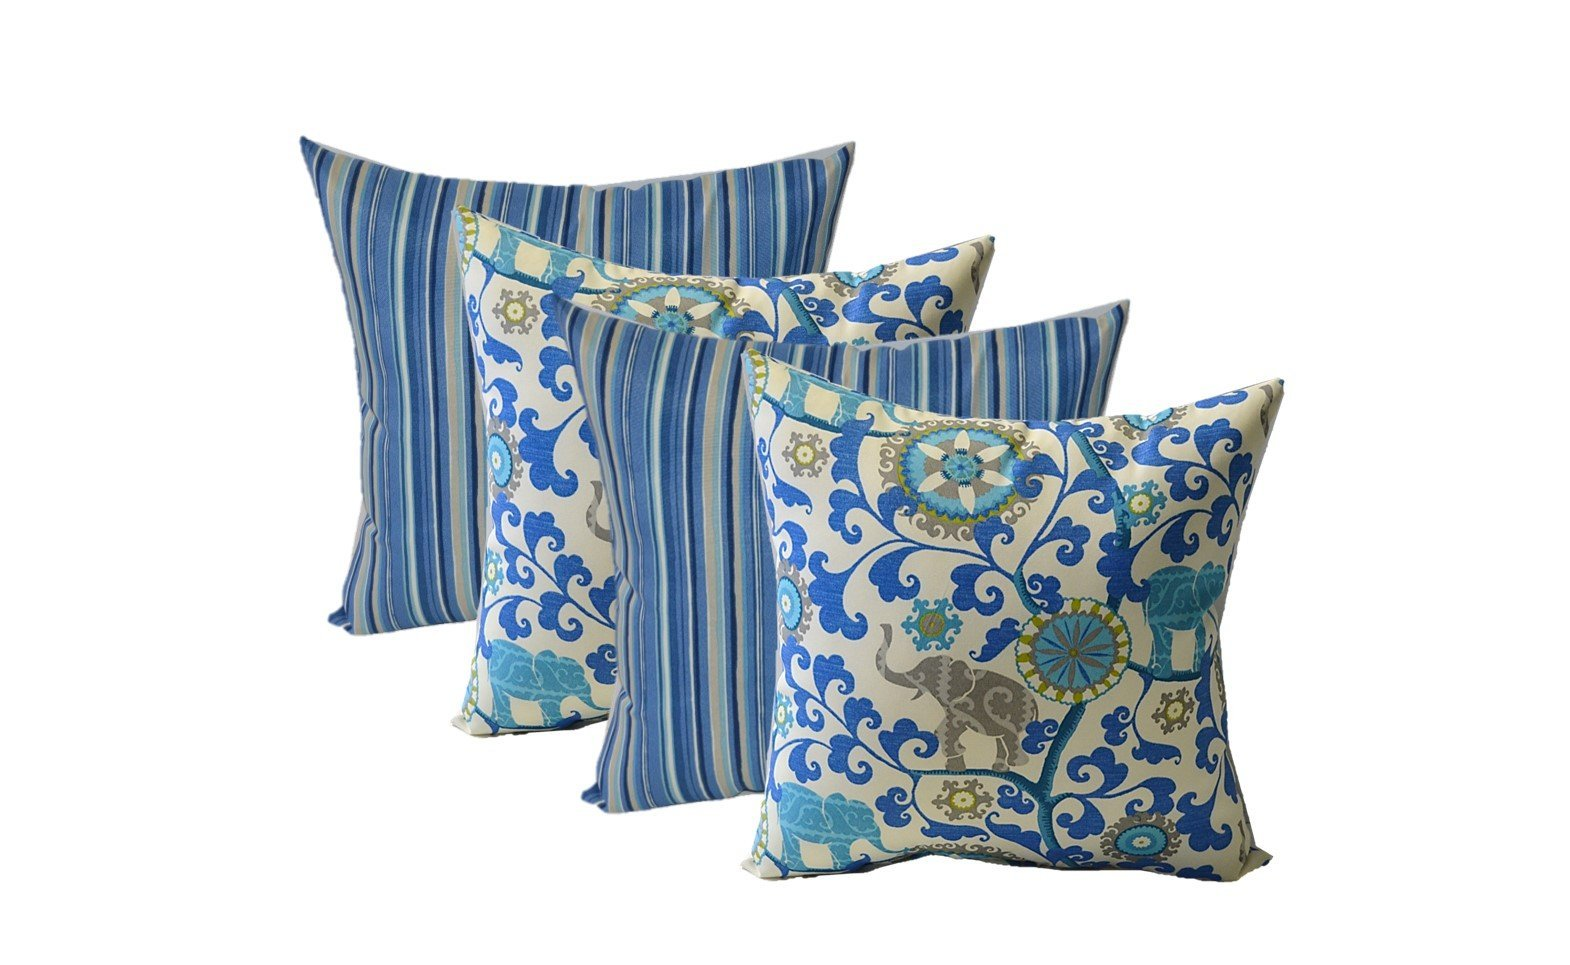 Set of 4 - Indoor / Outdoor 17'' Square Decorative Throw / Toss Pillows - 2 Sapphire Blue, Tan Stripe & 2 Sapphire Blue, Turquoise, Green, Gray Bohemian Elephant